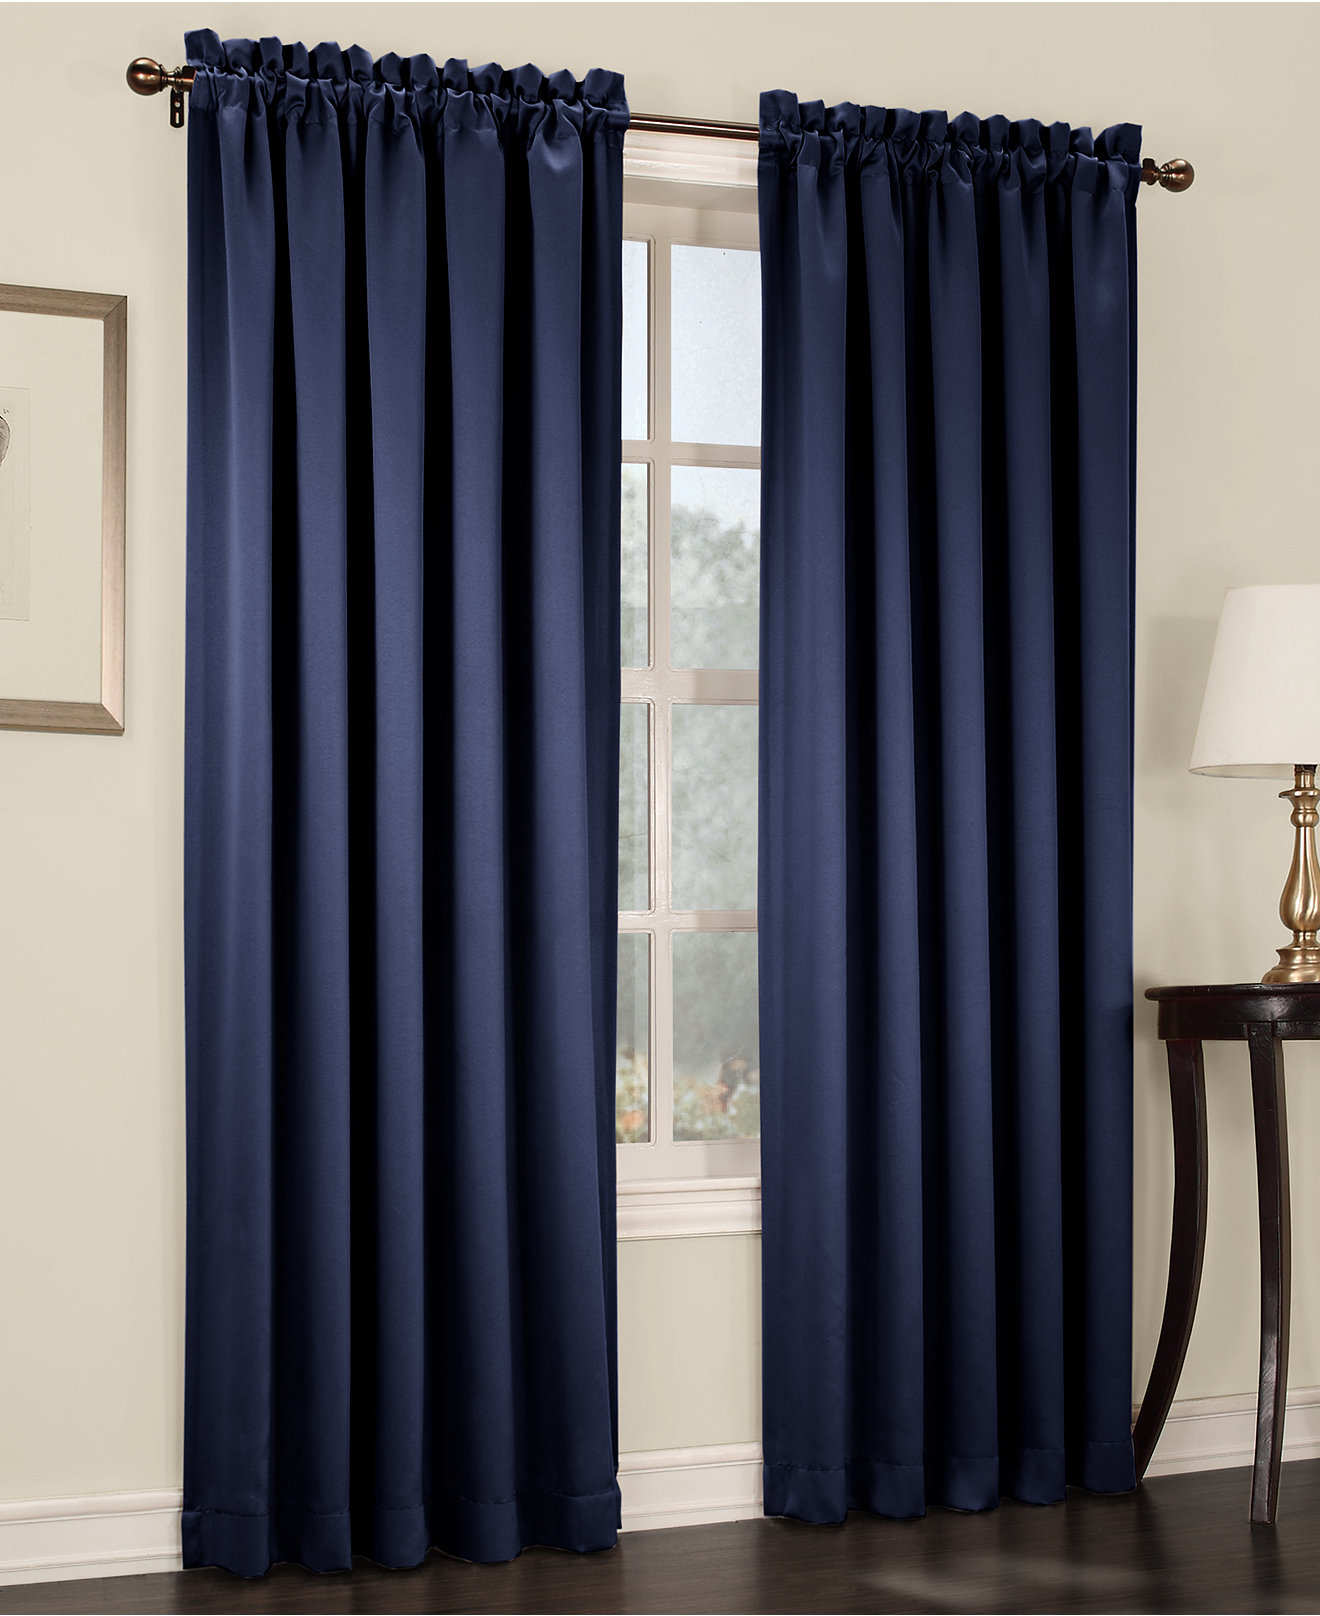 Noise Cancelling Curtains Ikea Cool Sleep Soundly Night And Day Two Ways To Soundproof Your